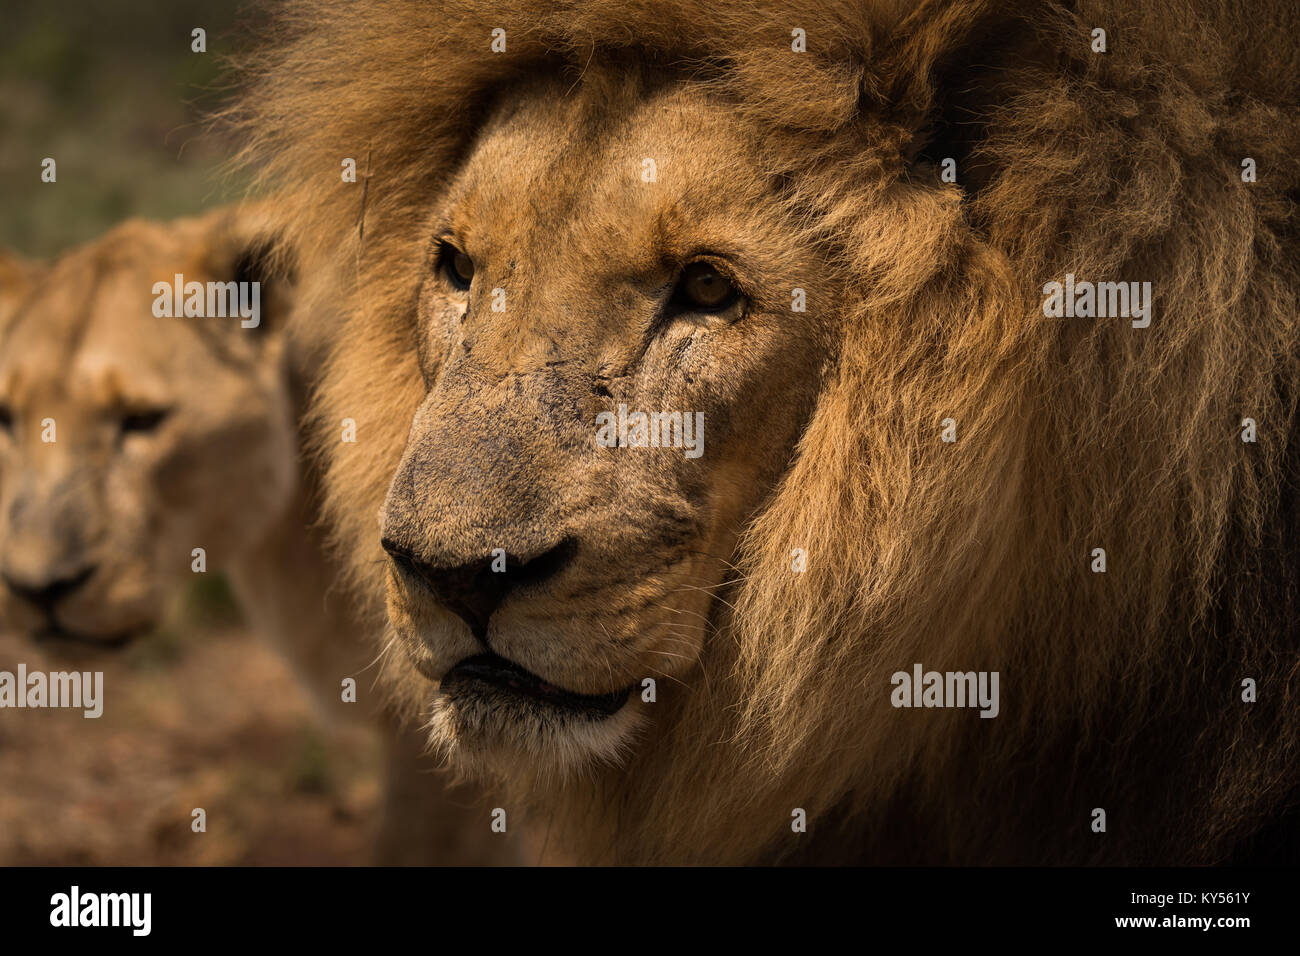 Lion and lioness gazing at safari park - Stock Image